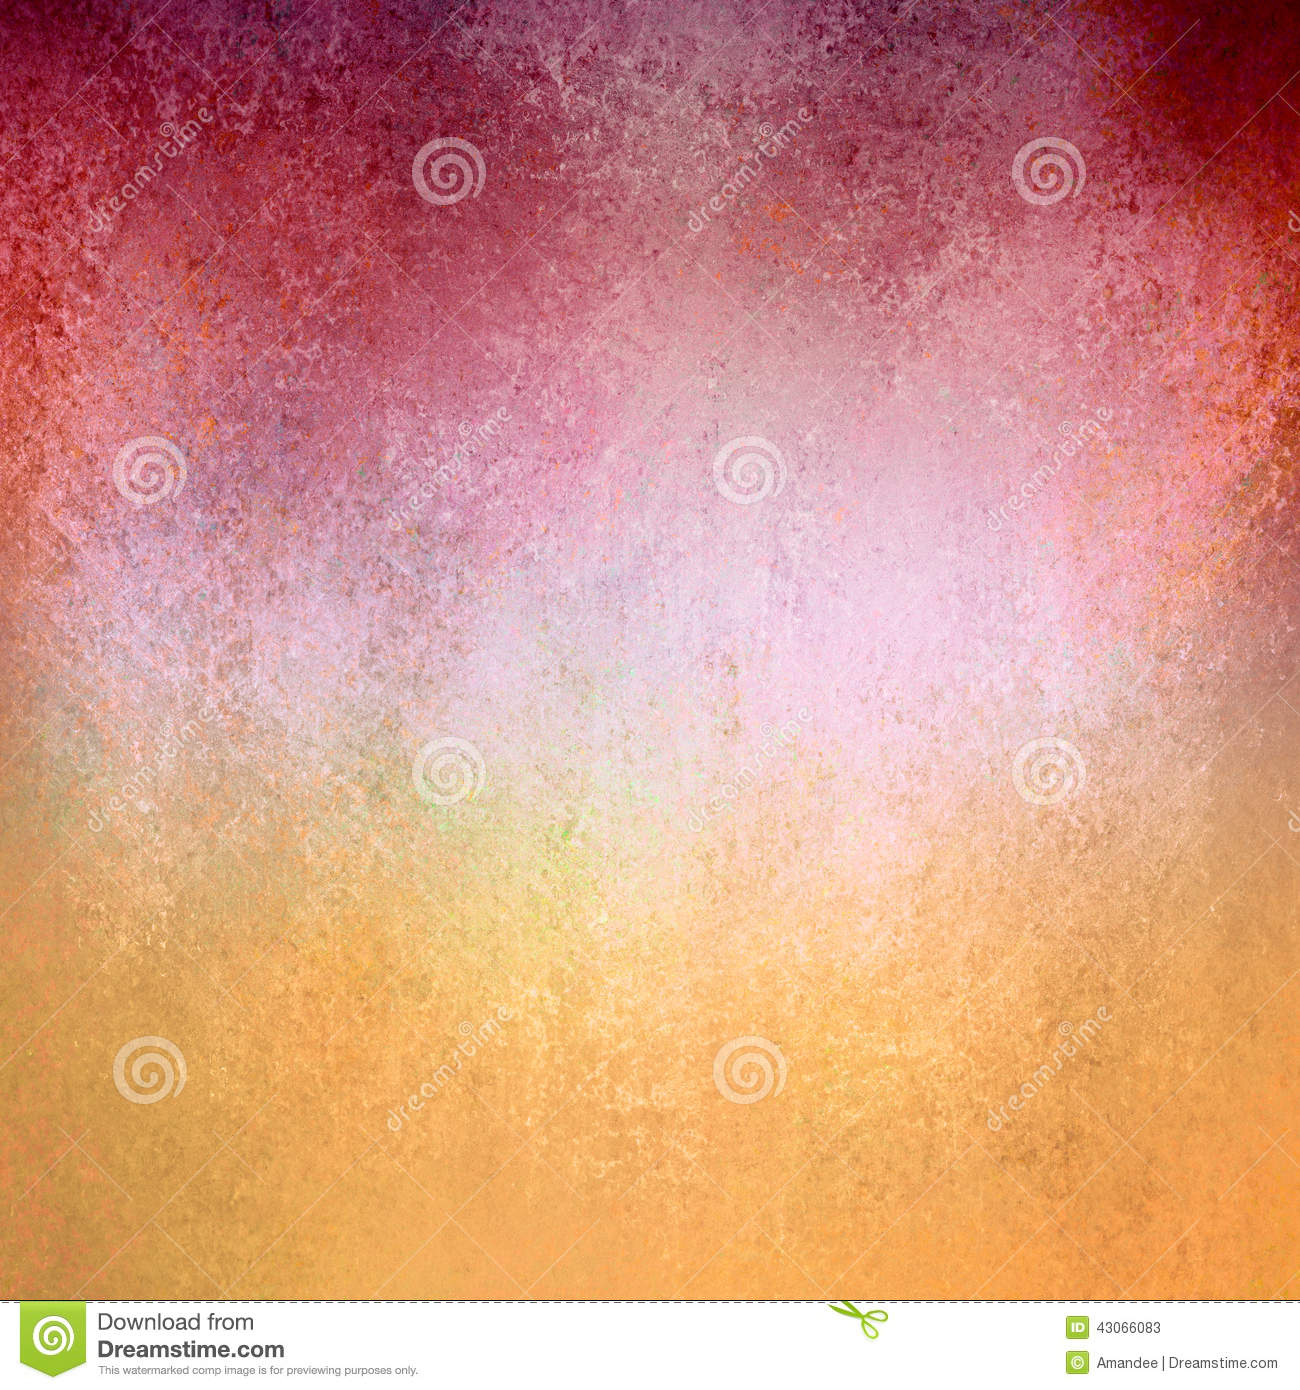 Old vintage red gold paper background texture